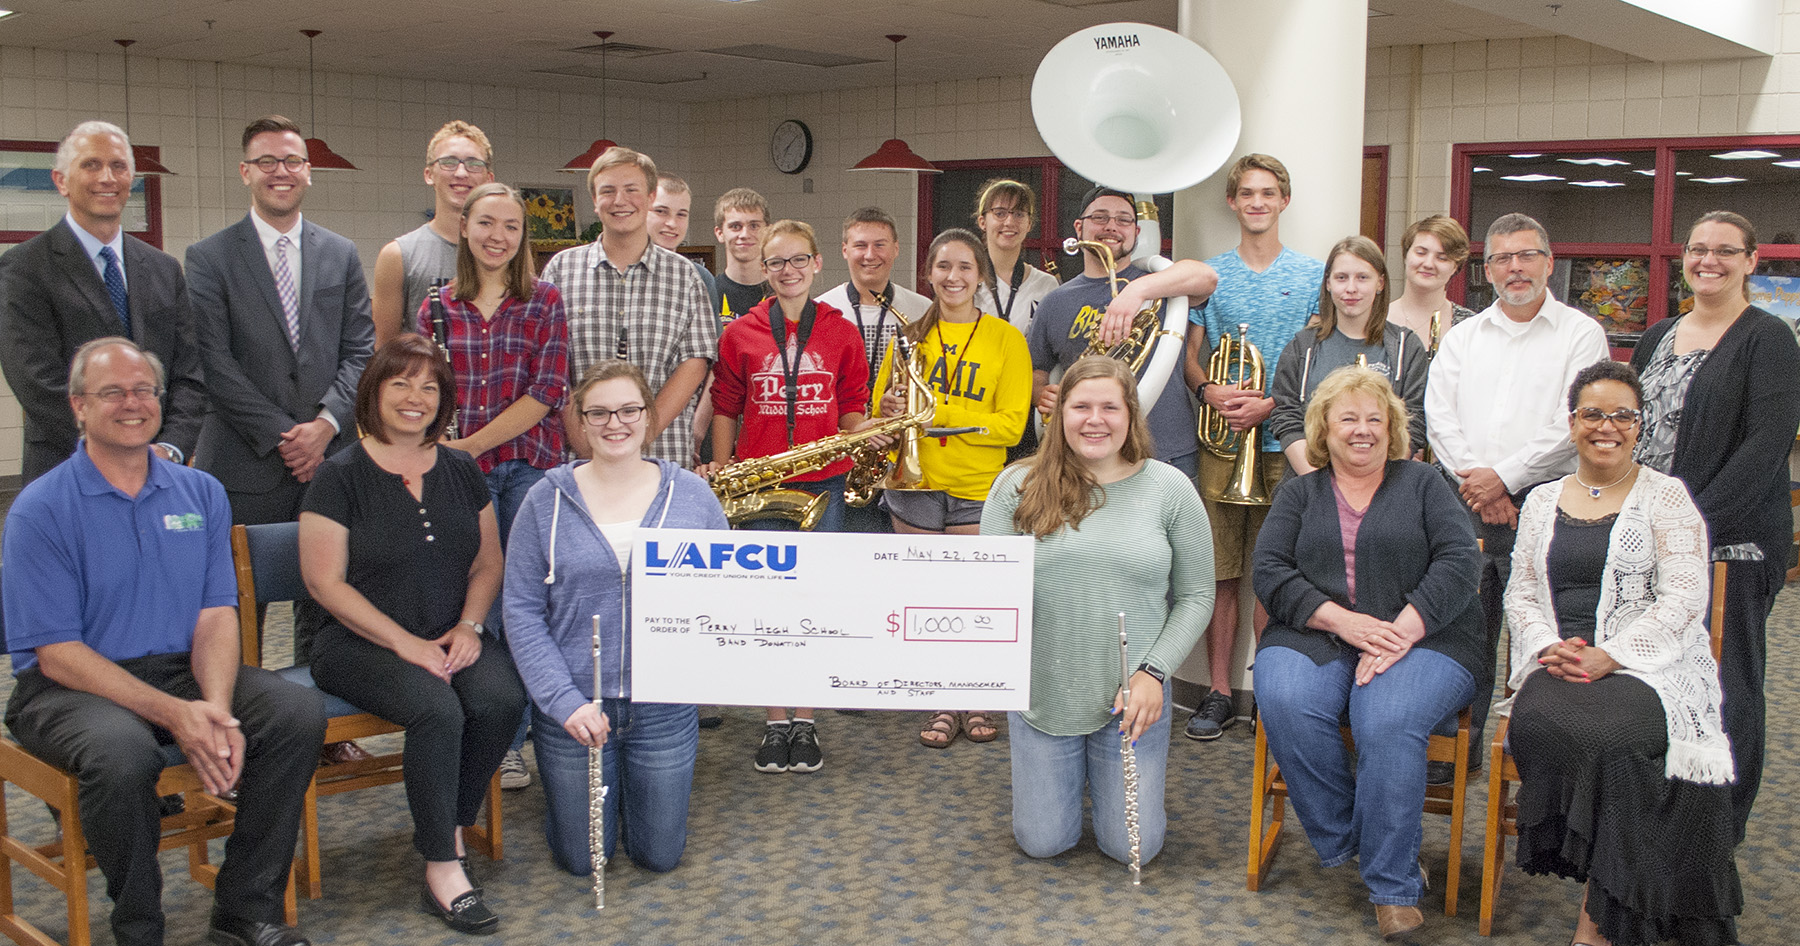 LAFCU-Perry-donation.jpg